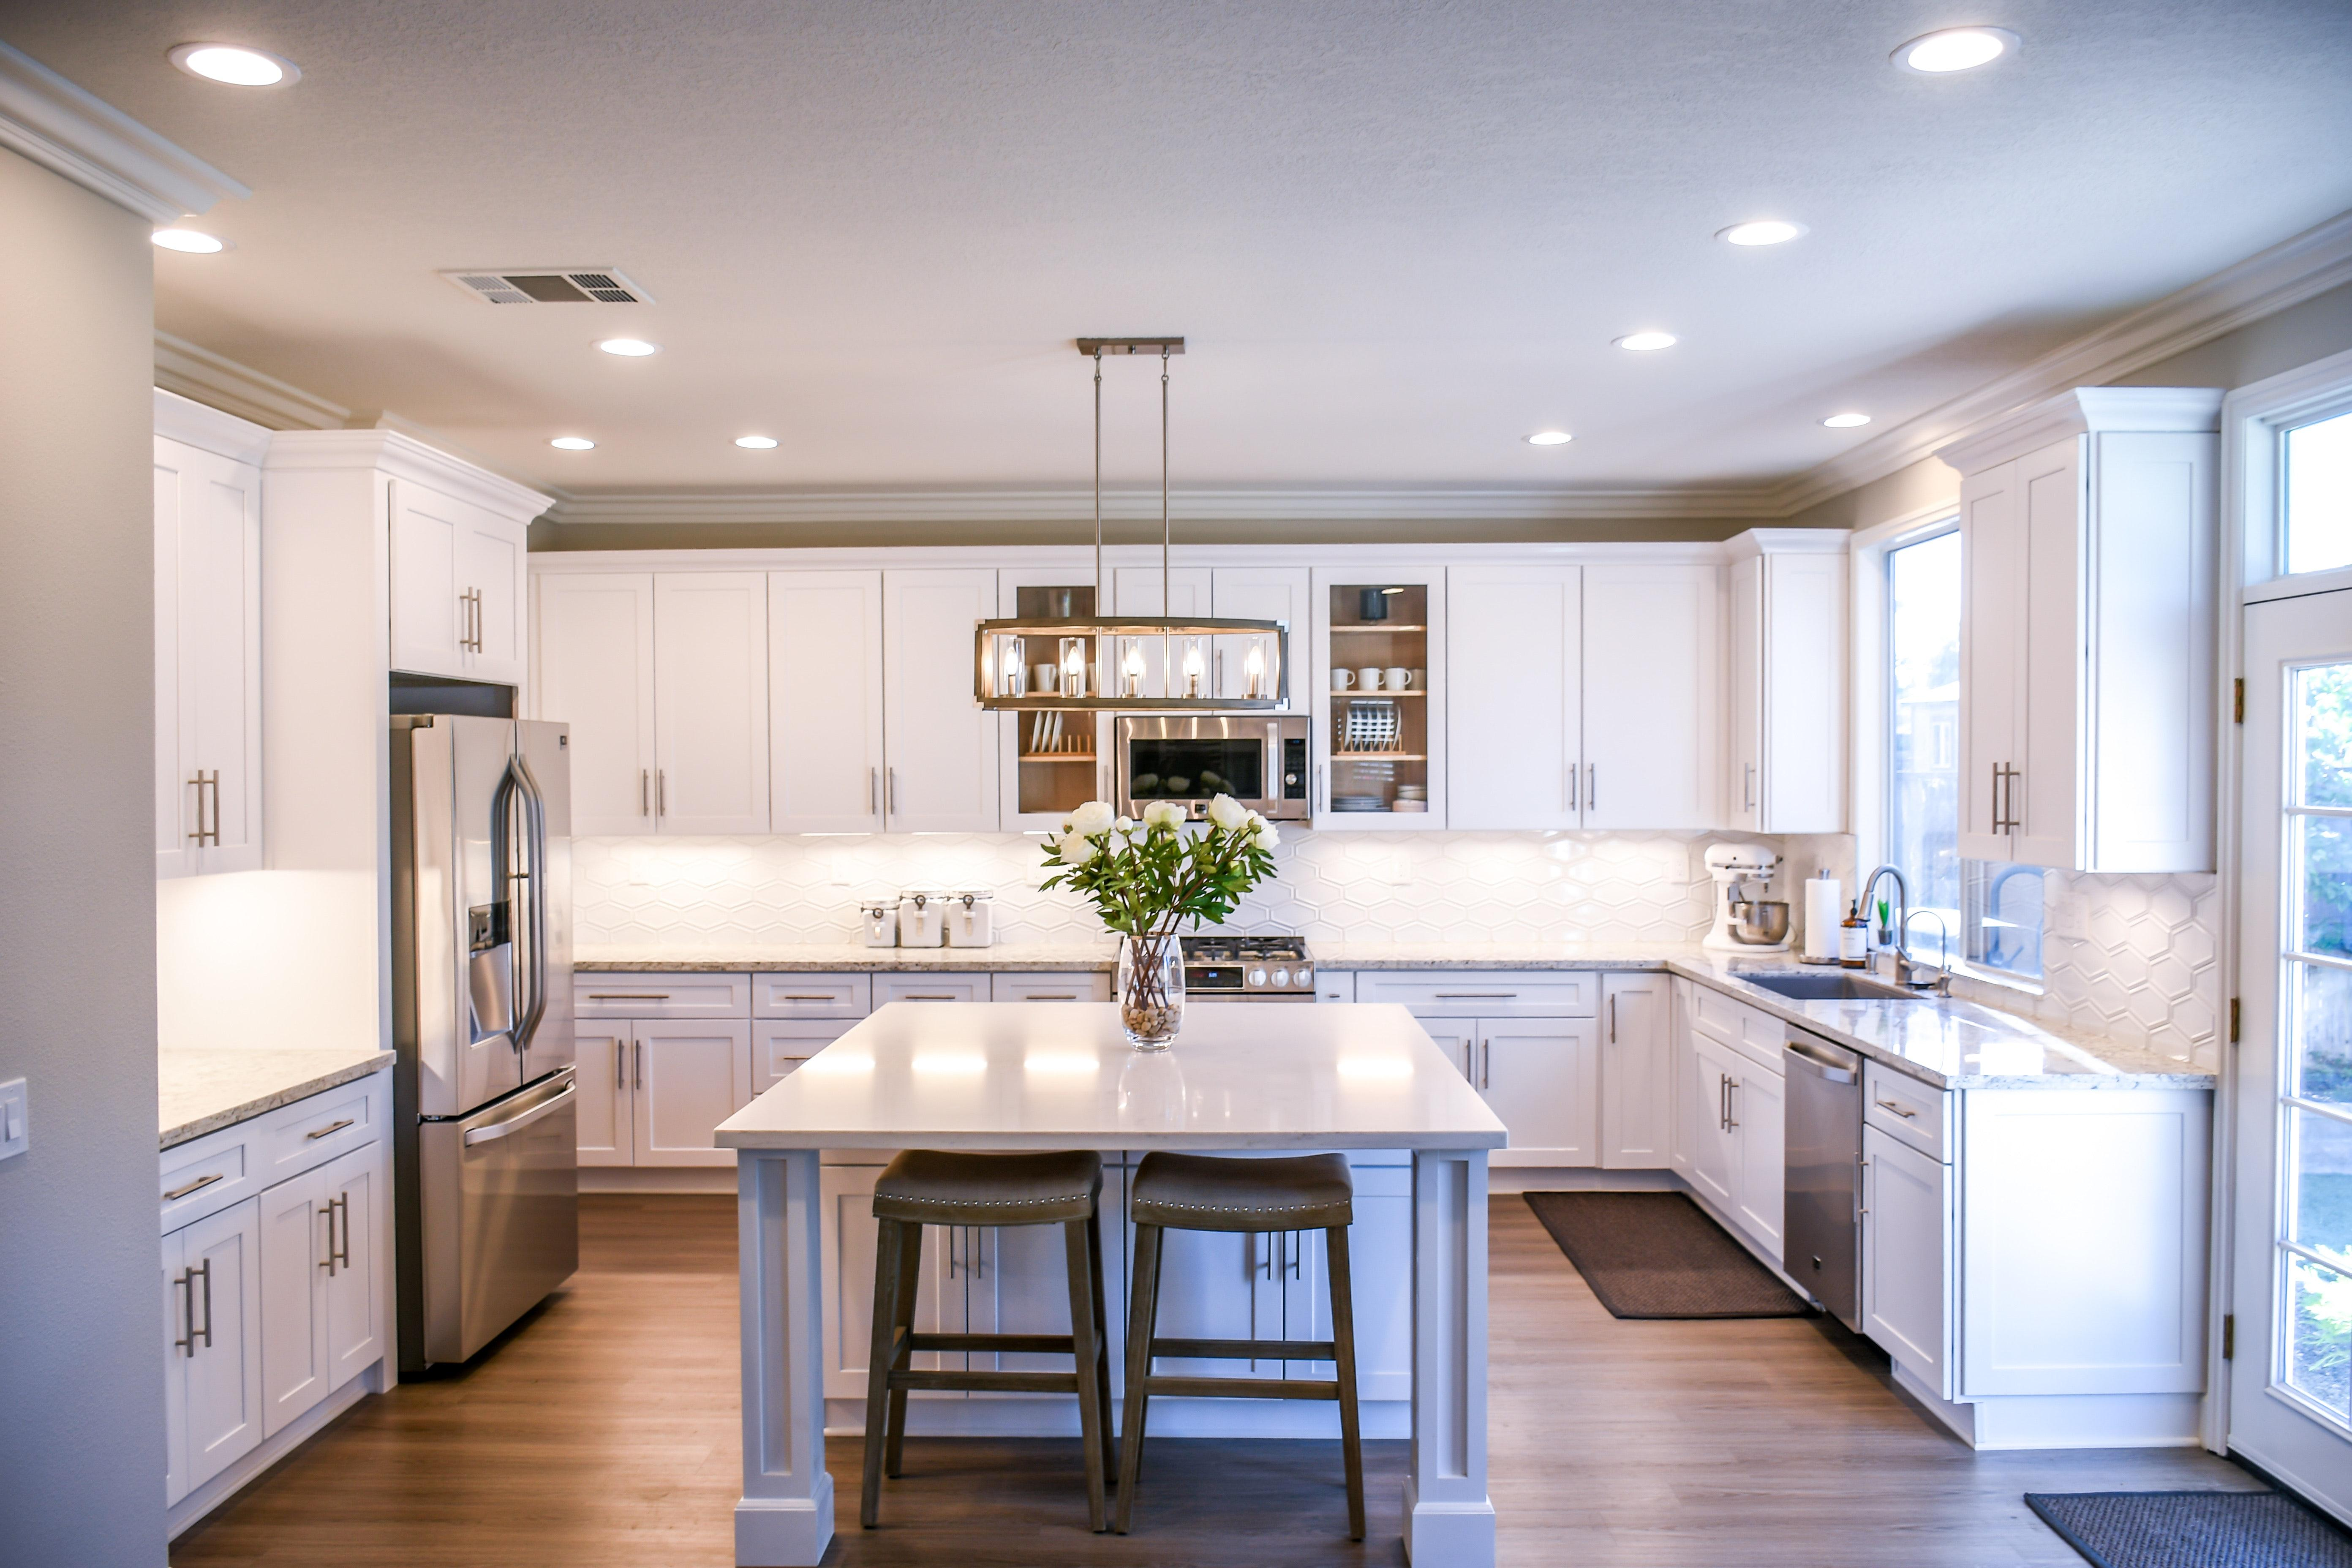 Spring Cleaning Checklist: 5 Rooms in 5 days Thumbnail